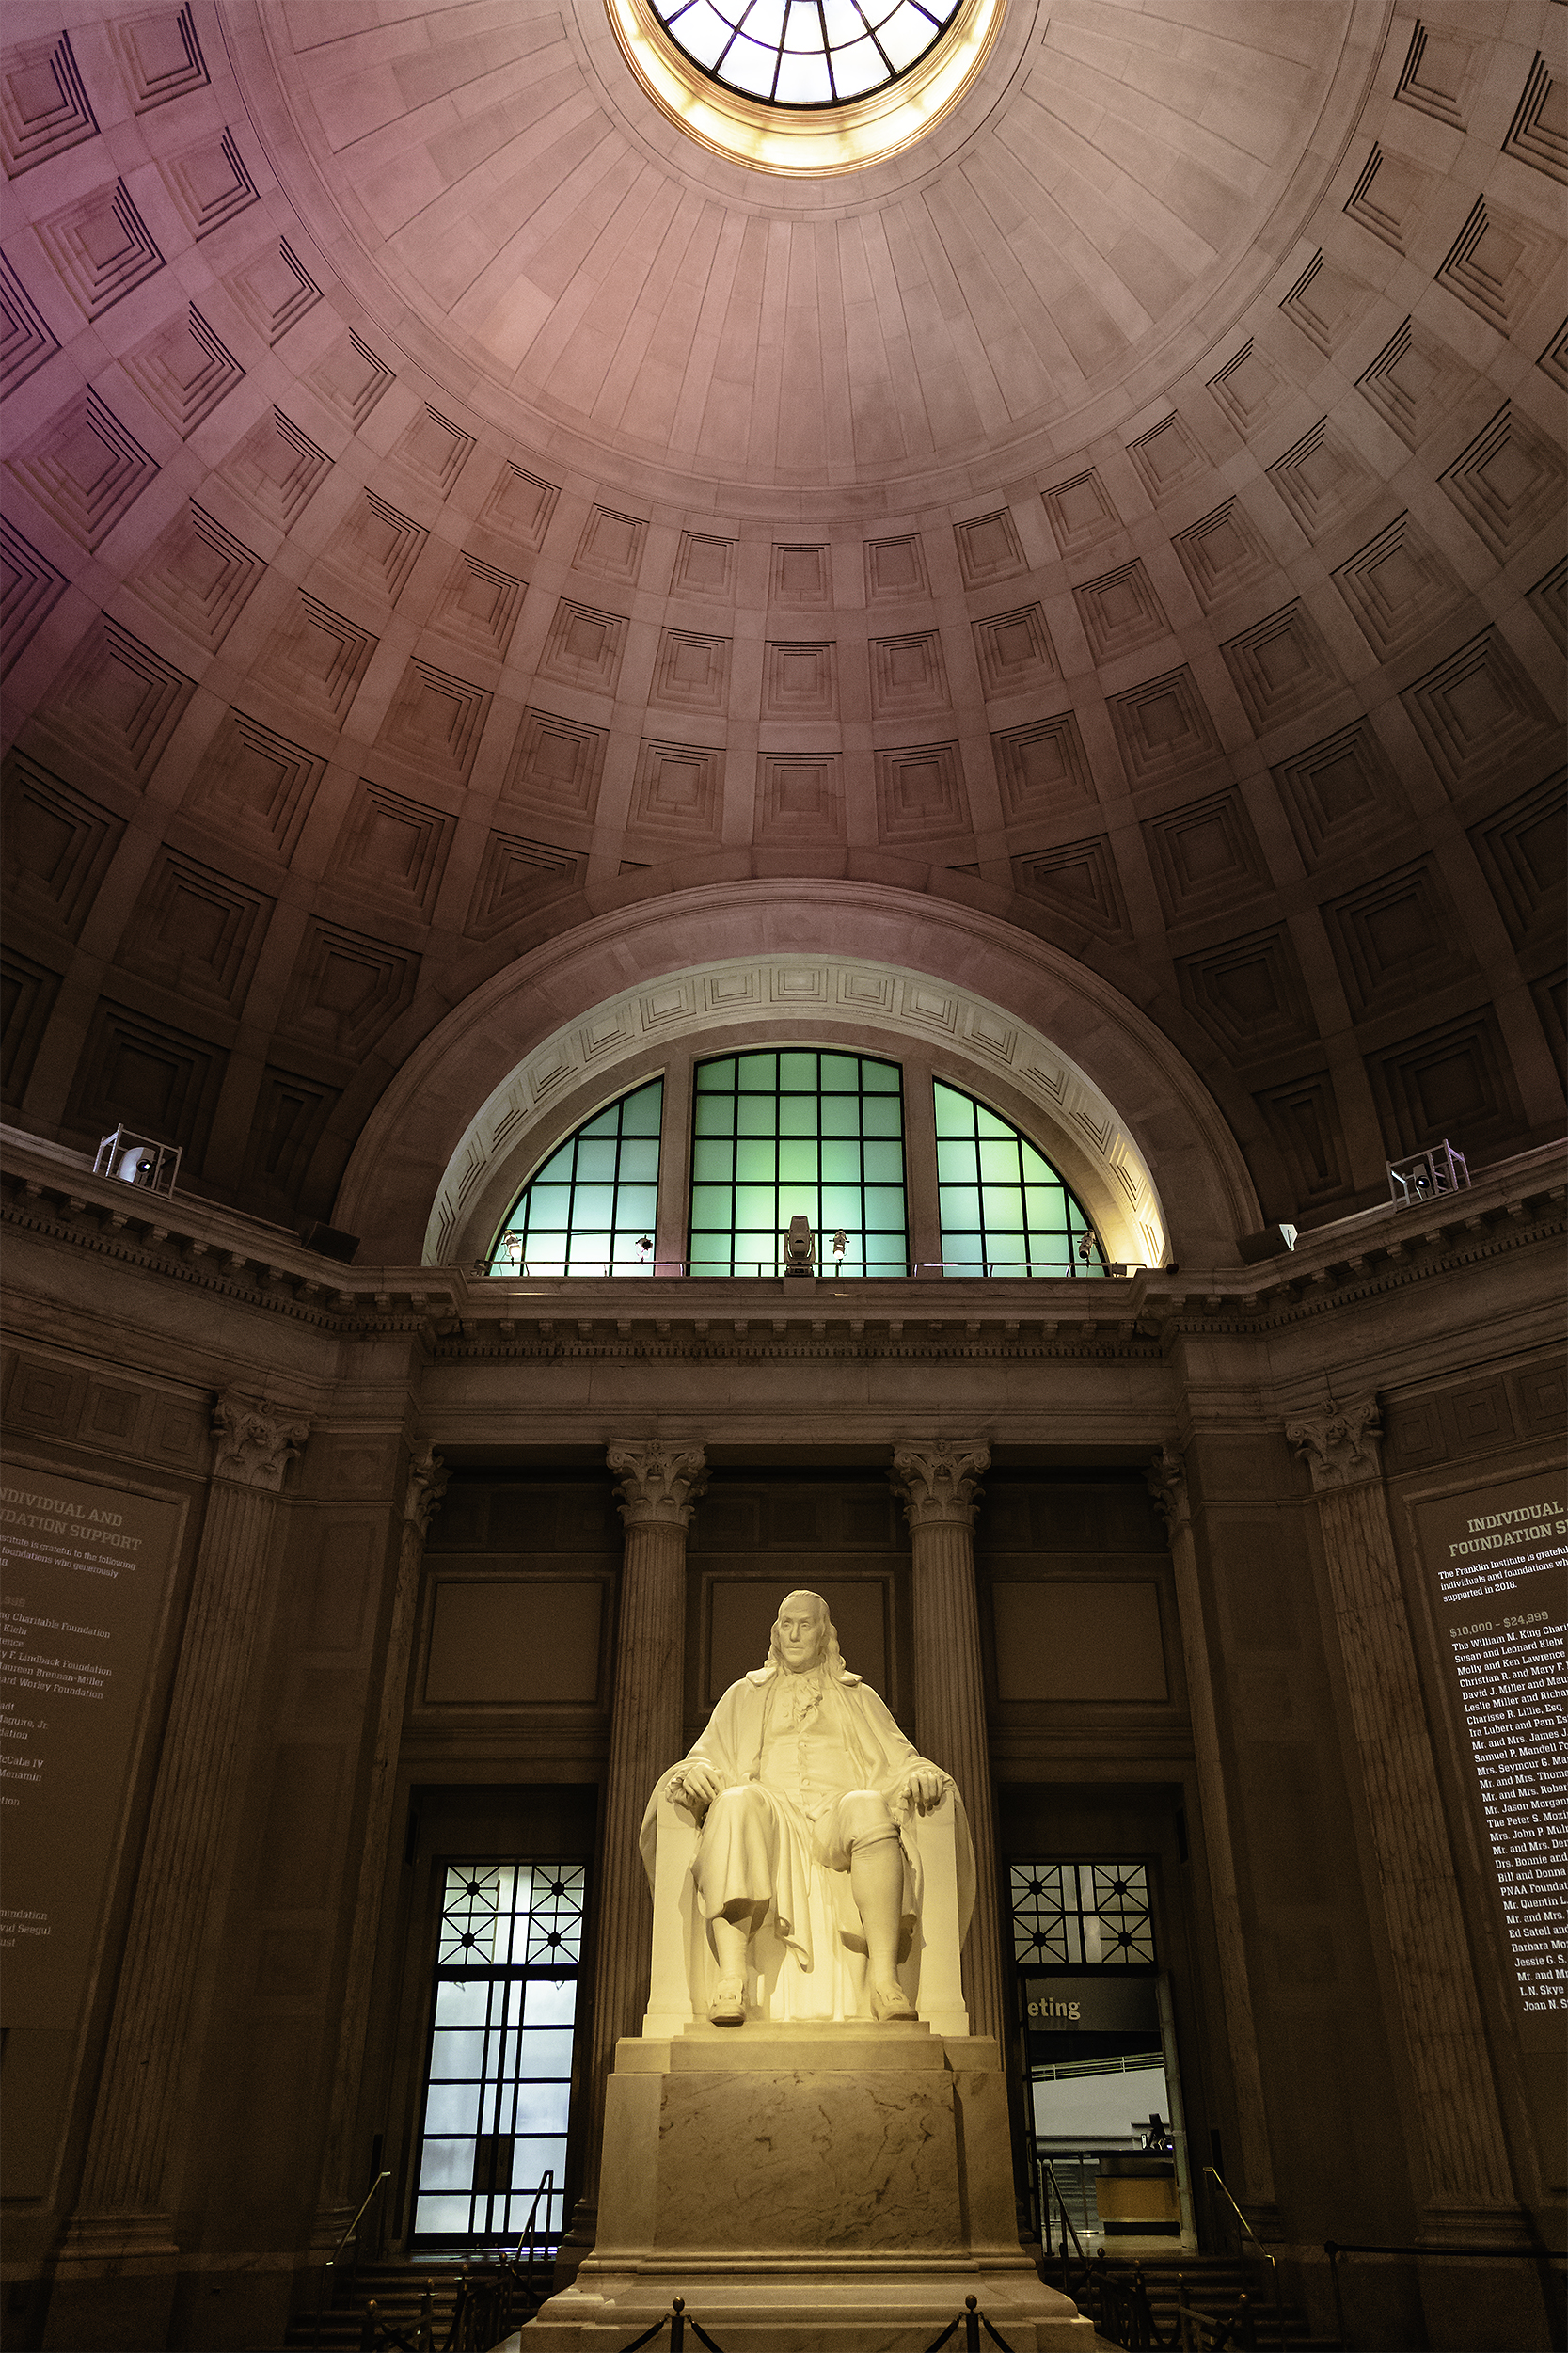 The Ben Franklin National Memorial, The Franklin Institute Rotunda